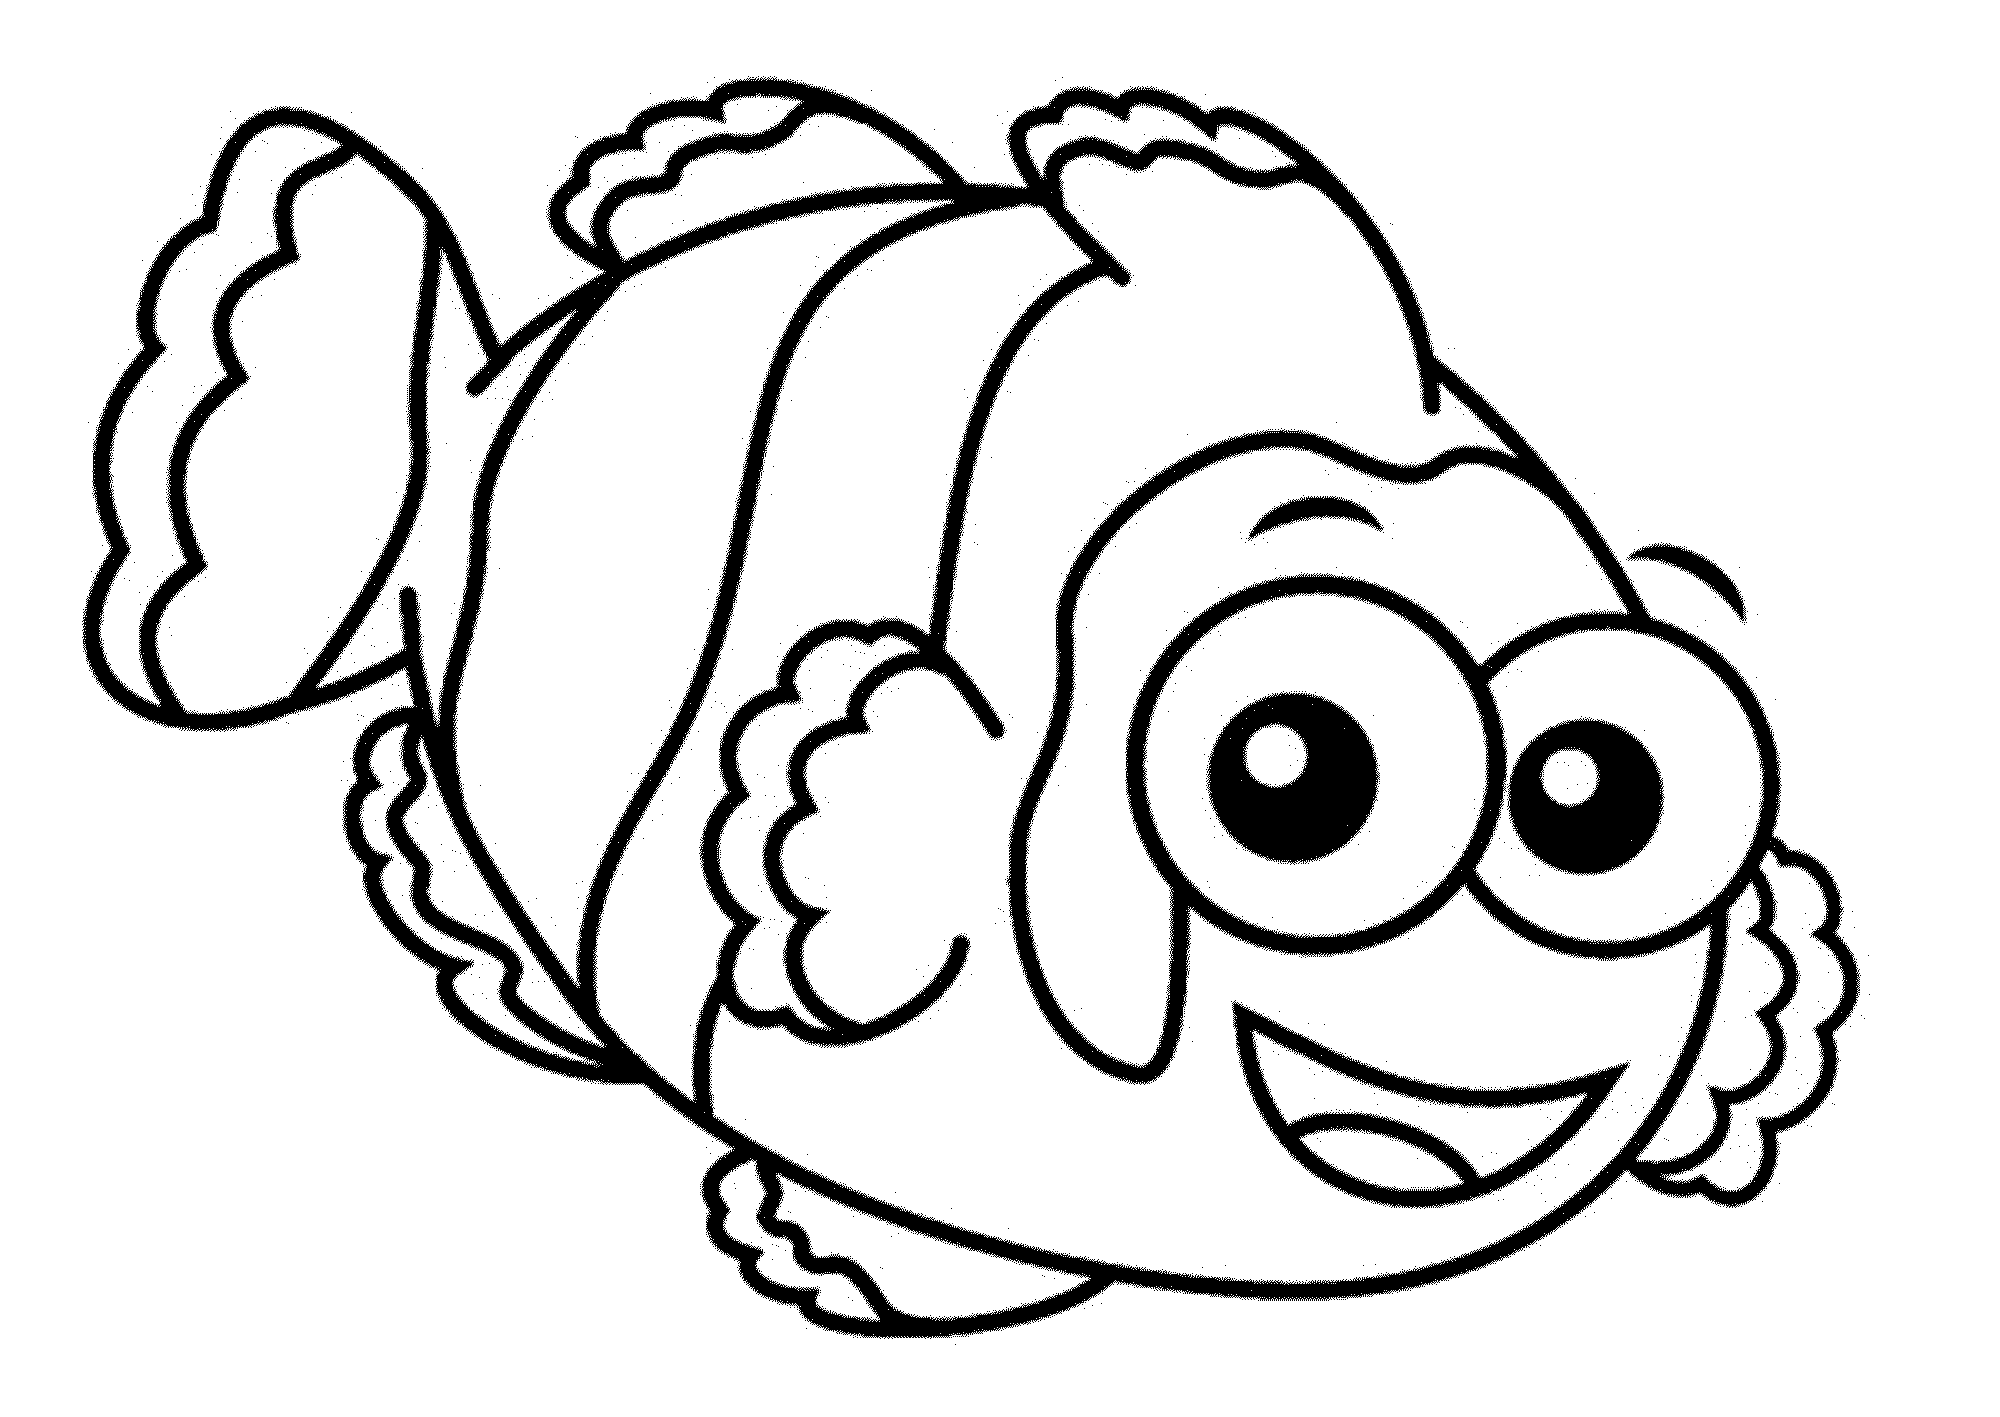 fish colouring images print download cute and educative fish coloring pages colouring images fish